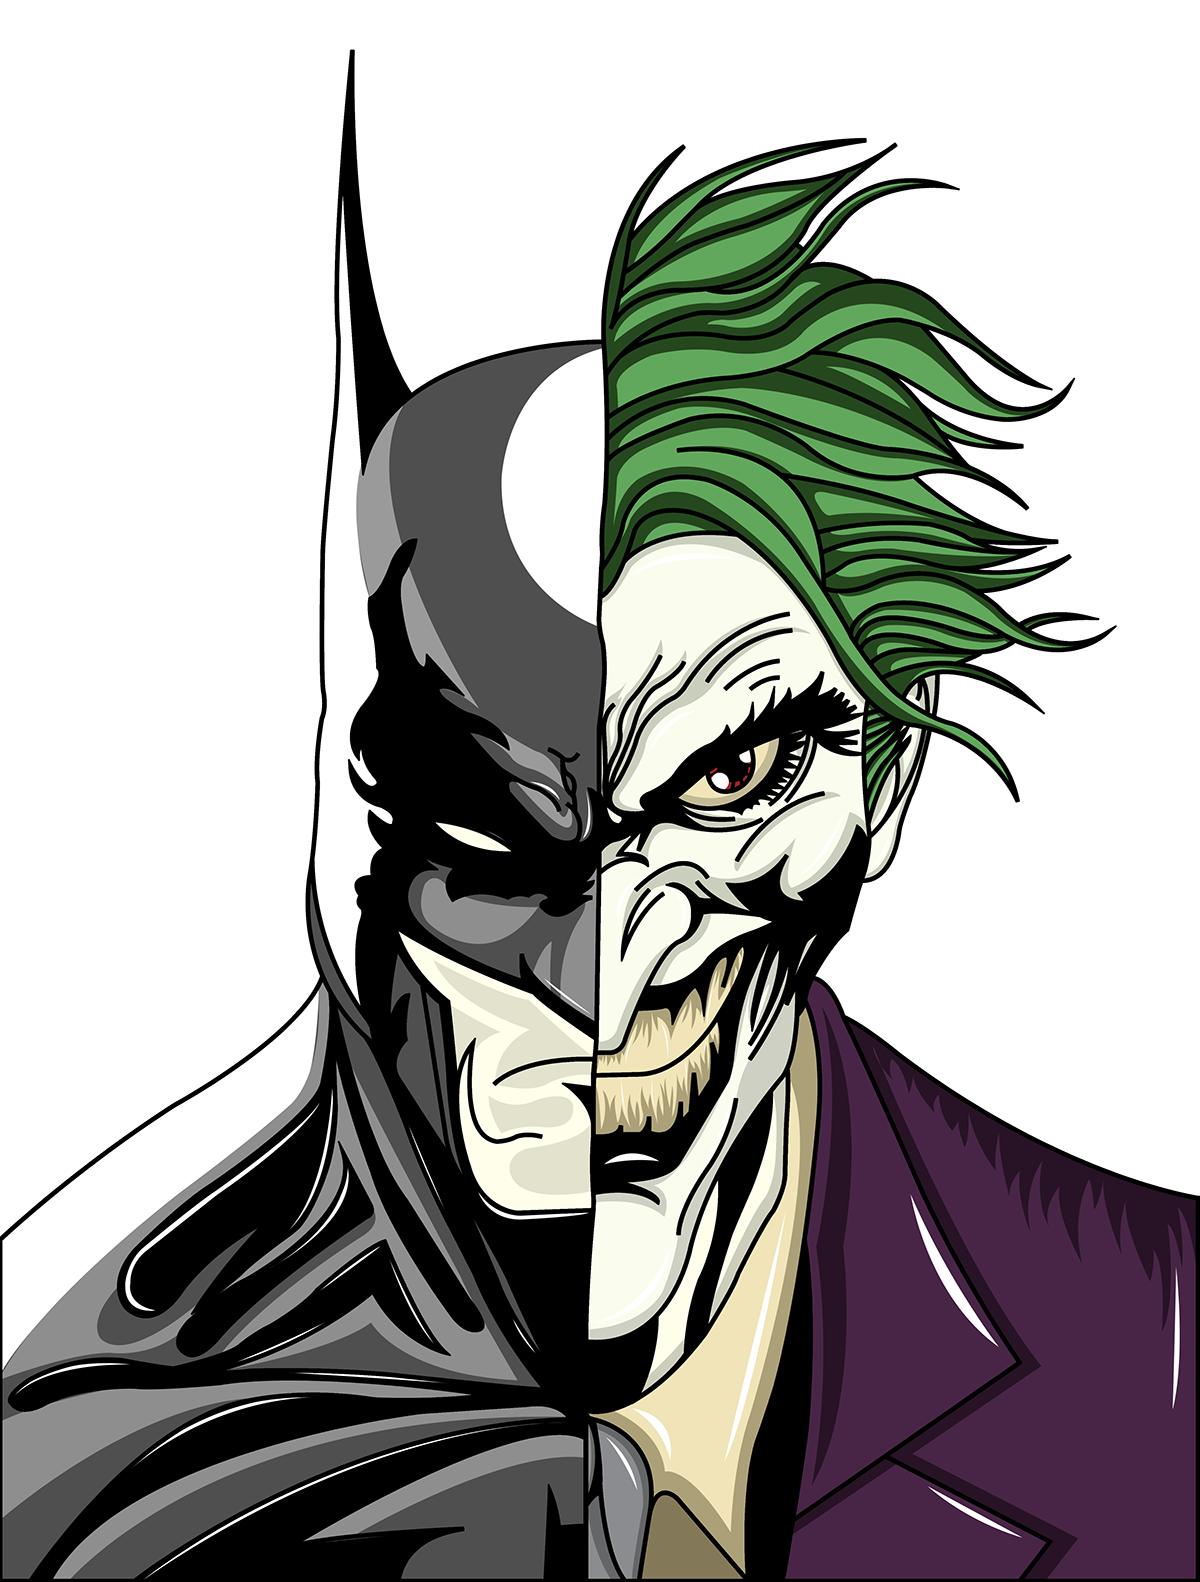 Batman & Joker on Behance